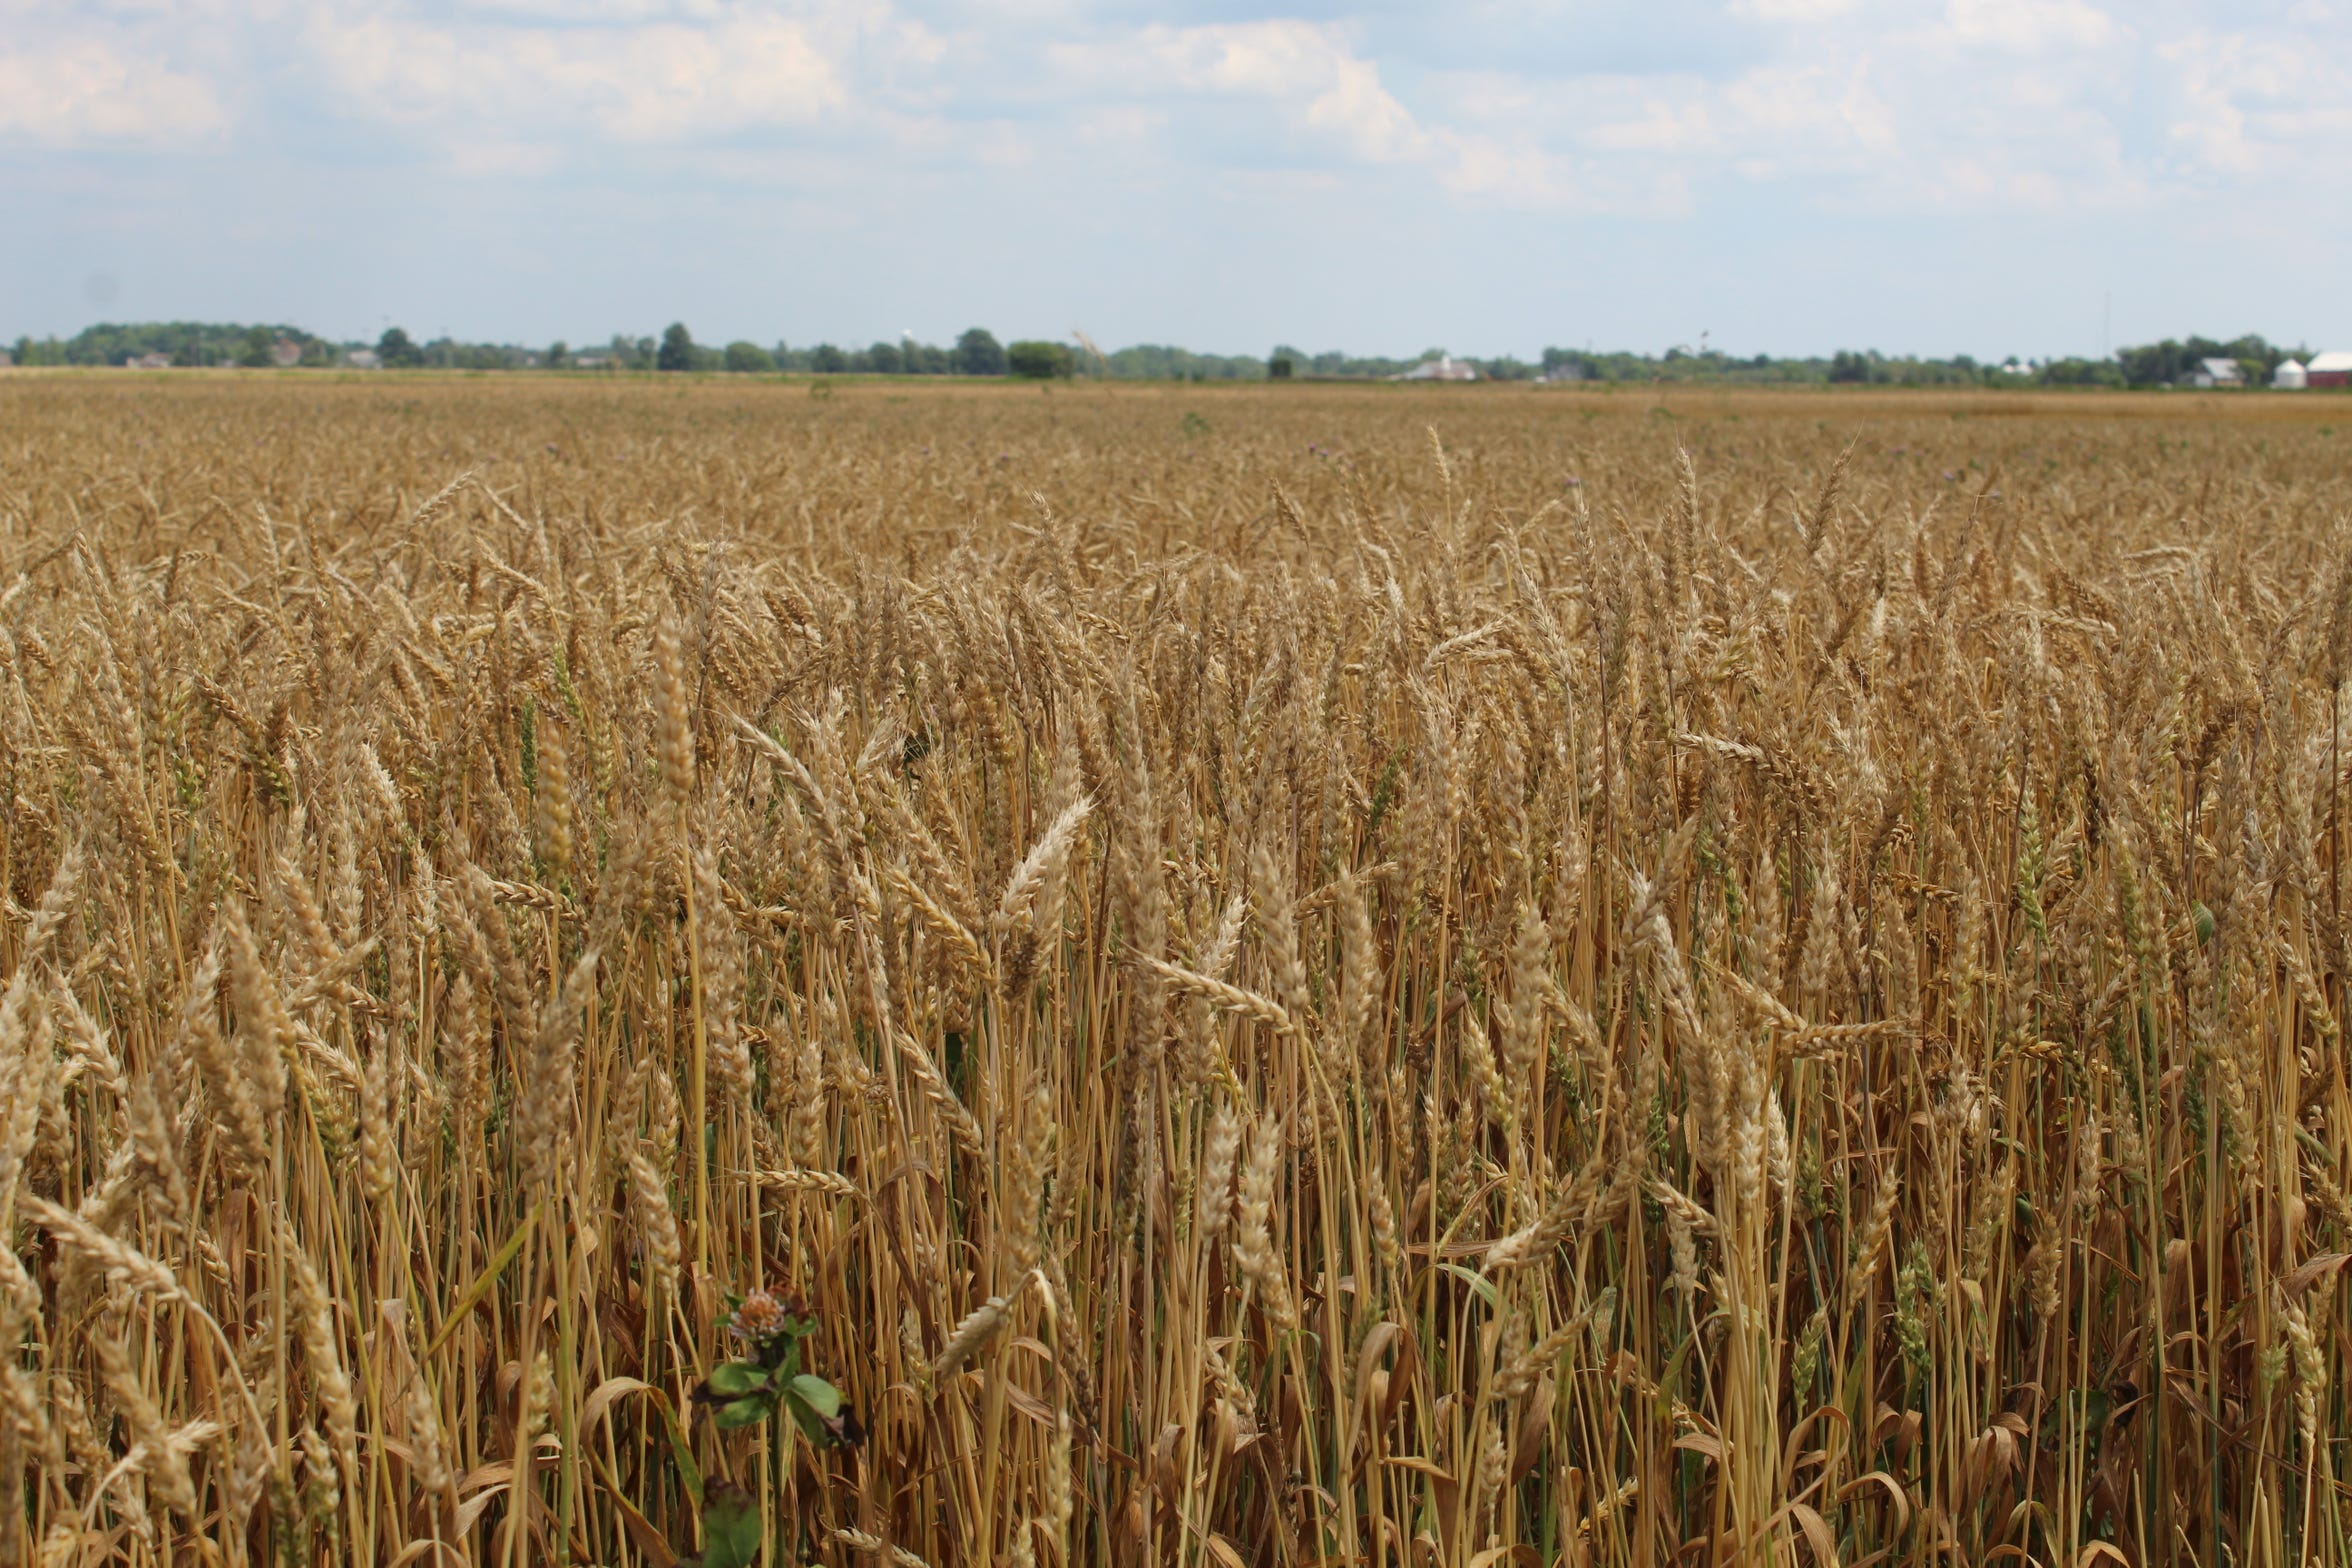 Wheat is usually Ottawa County's third most abundant grain crop, behind soybeans and corn. This year, county wheat farmers are looking at 80% to 90% losses for wheat.